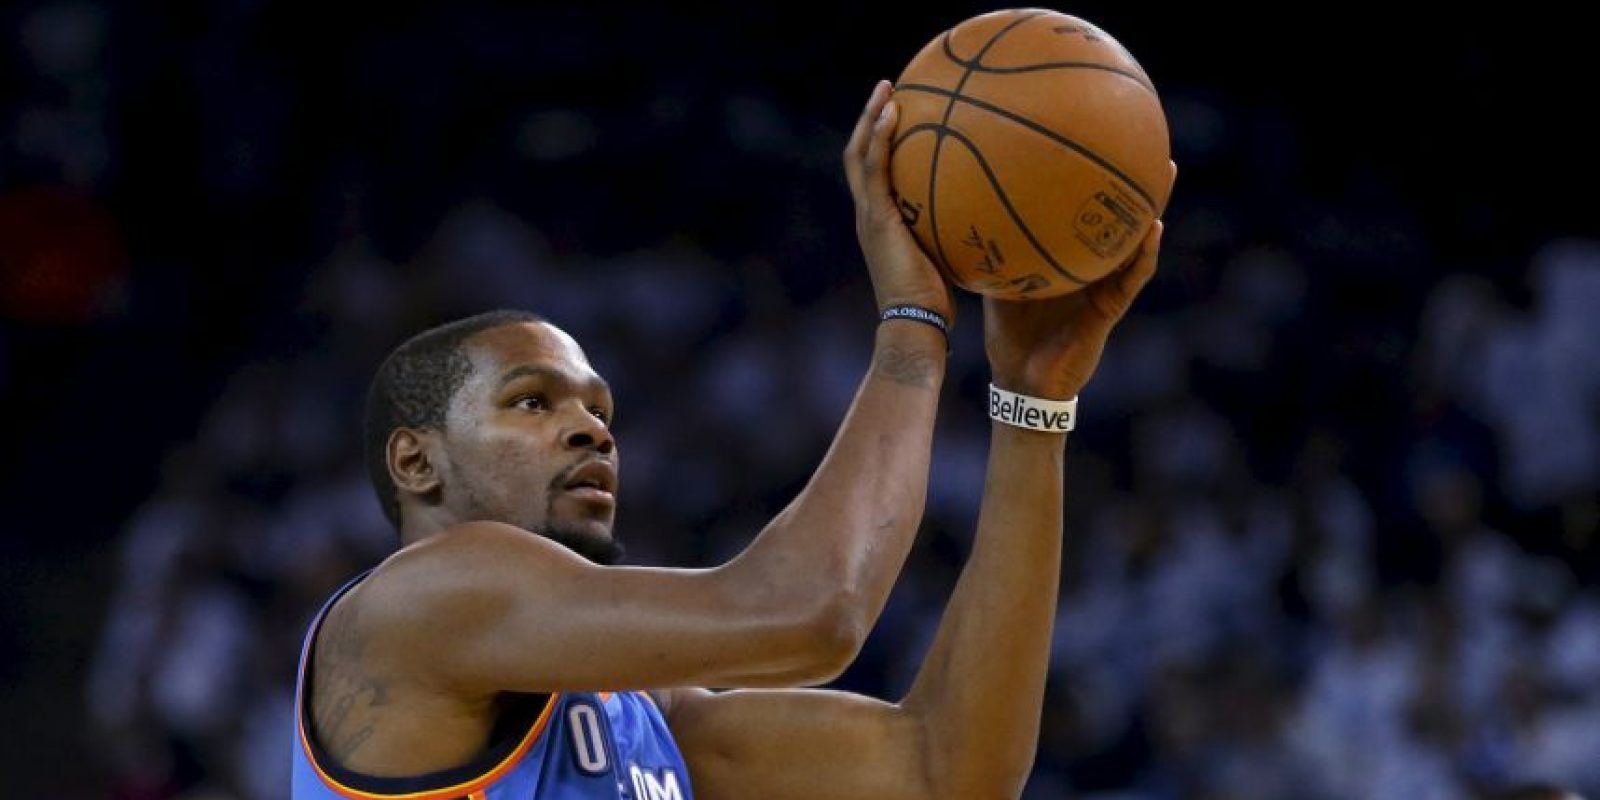 7. Kevin Durant Foto: Getty Images